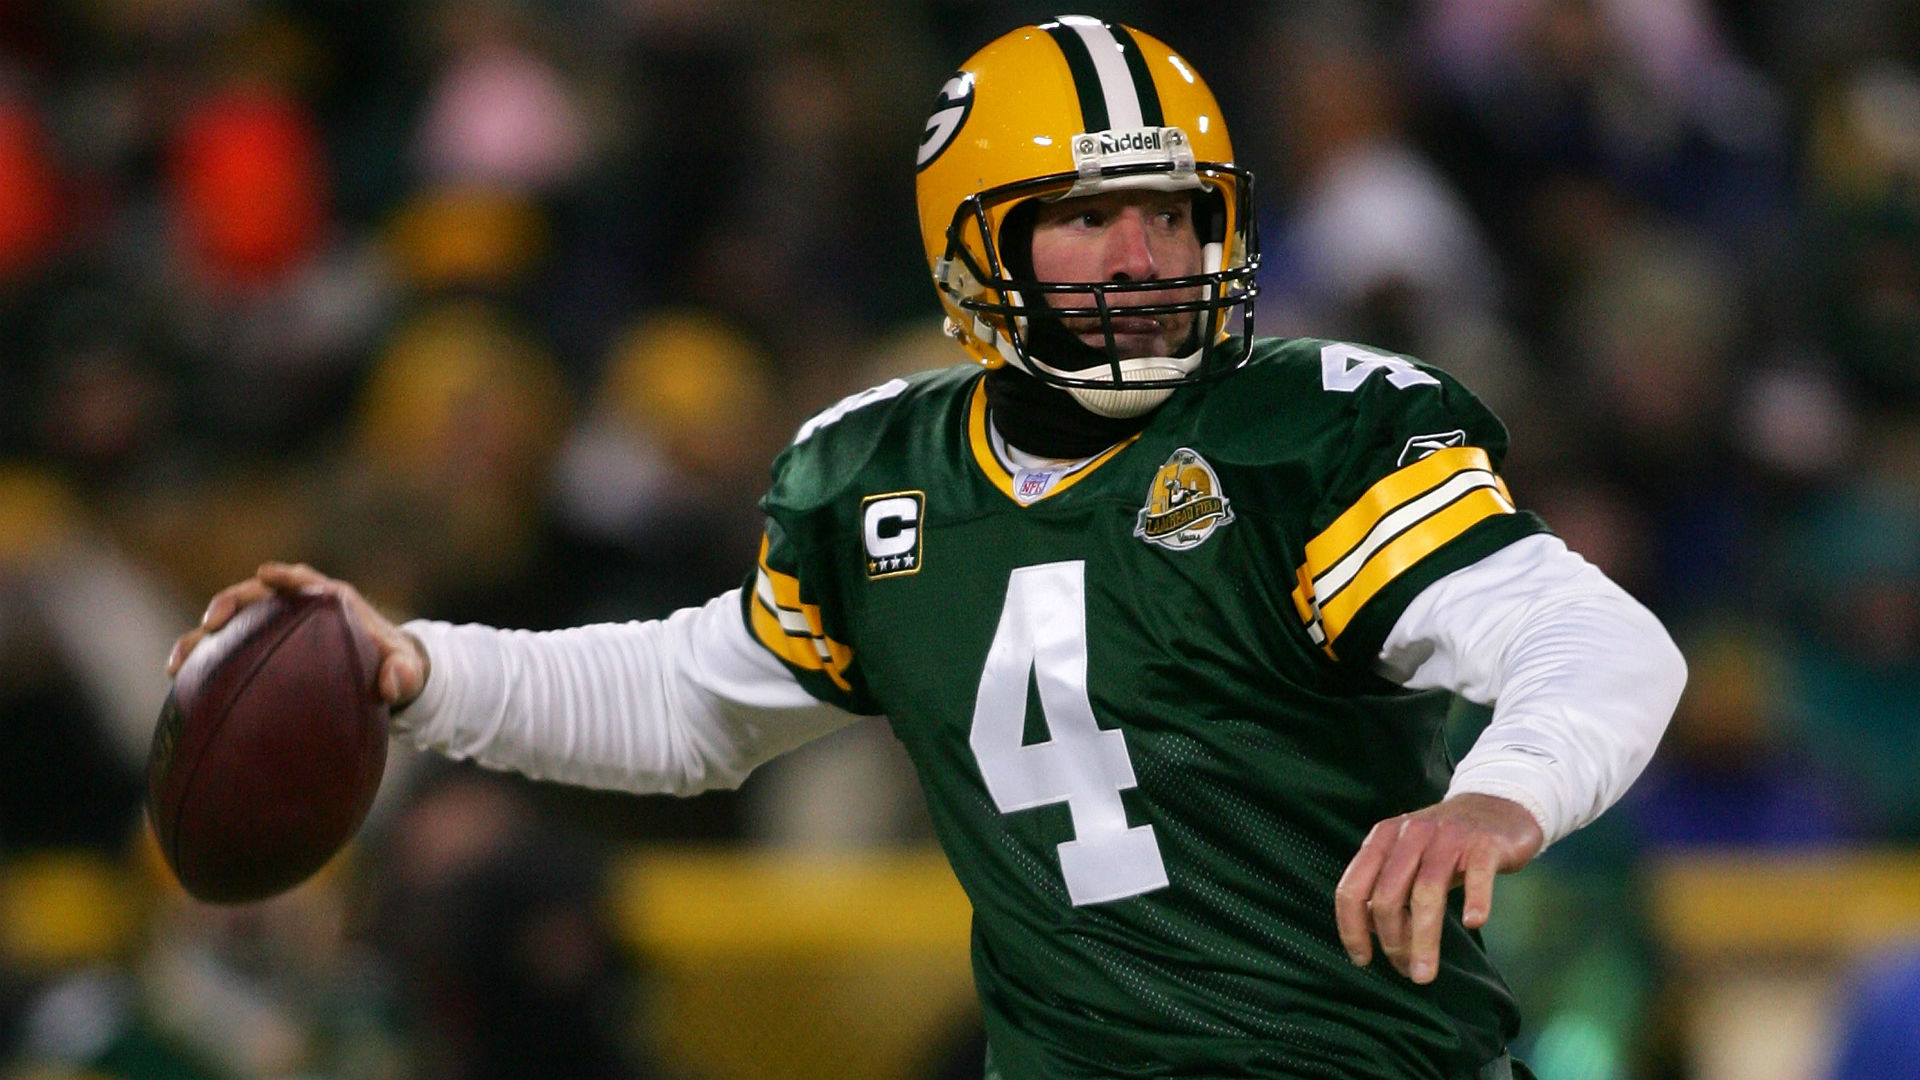 bede332c50e Report: Packers to retire Brett Favre's No. 4 on Thanksgiving | Sporting  News